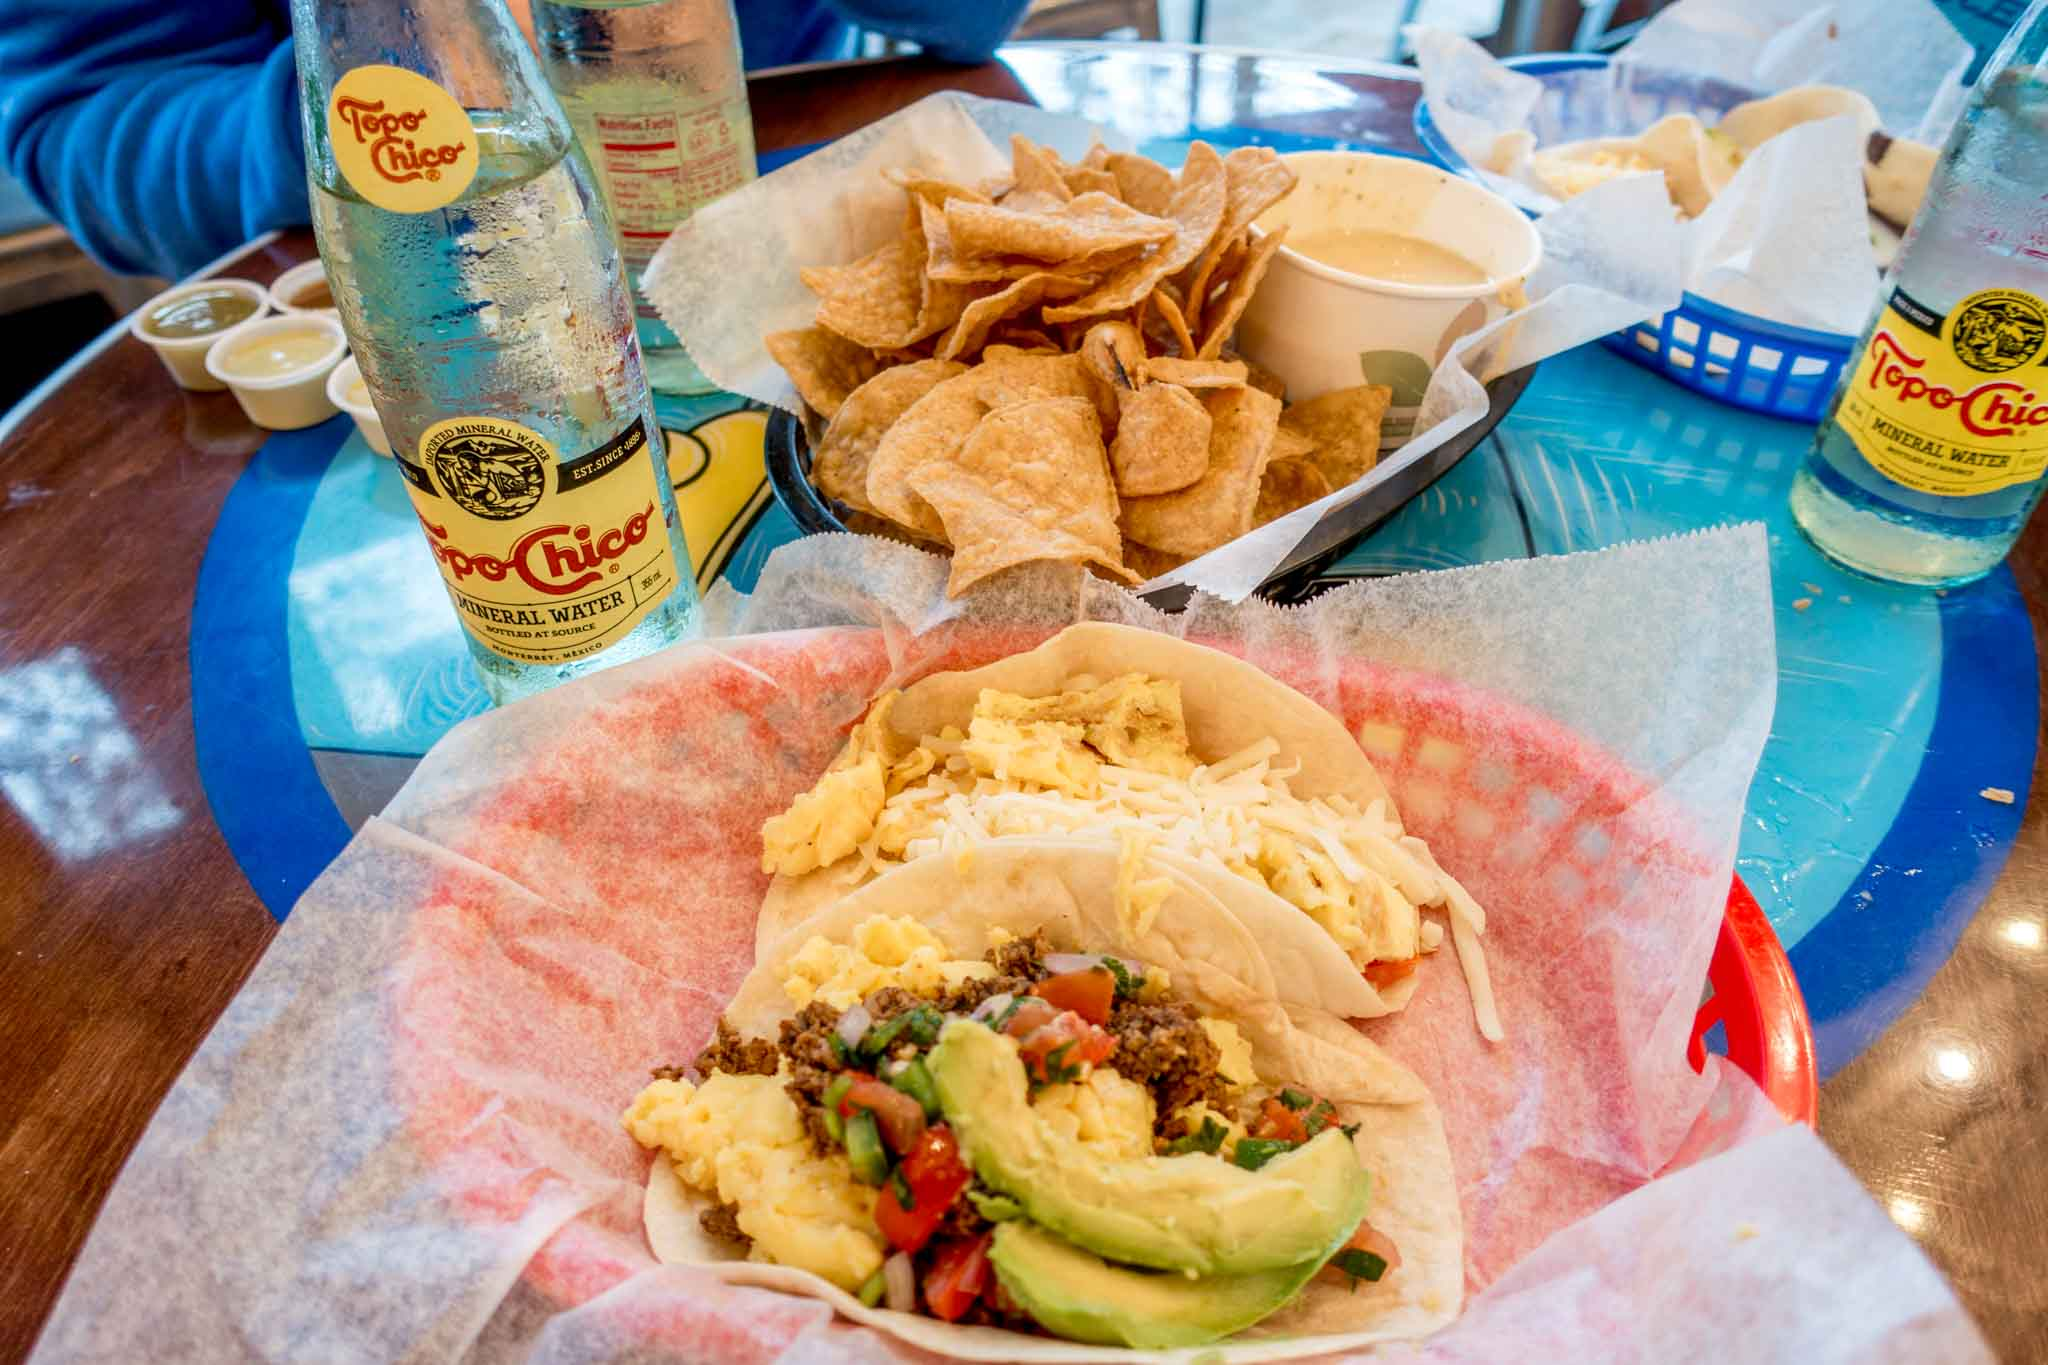 Breakfast tacos, chips, queso, and Topo Chico on a table